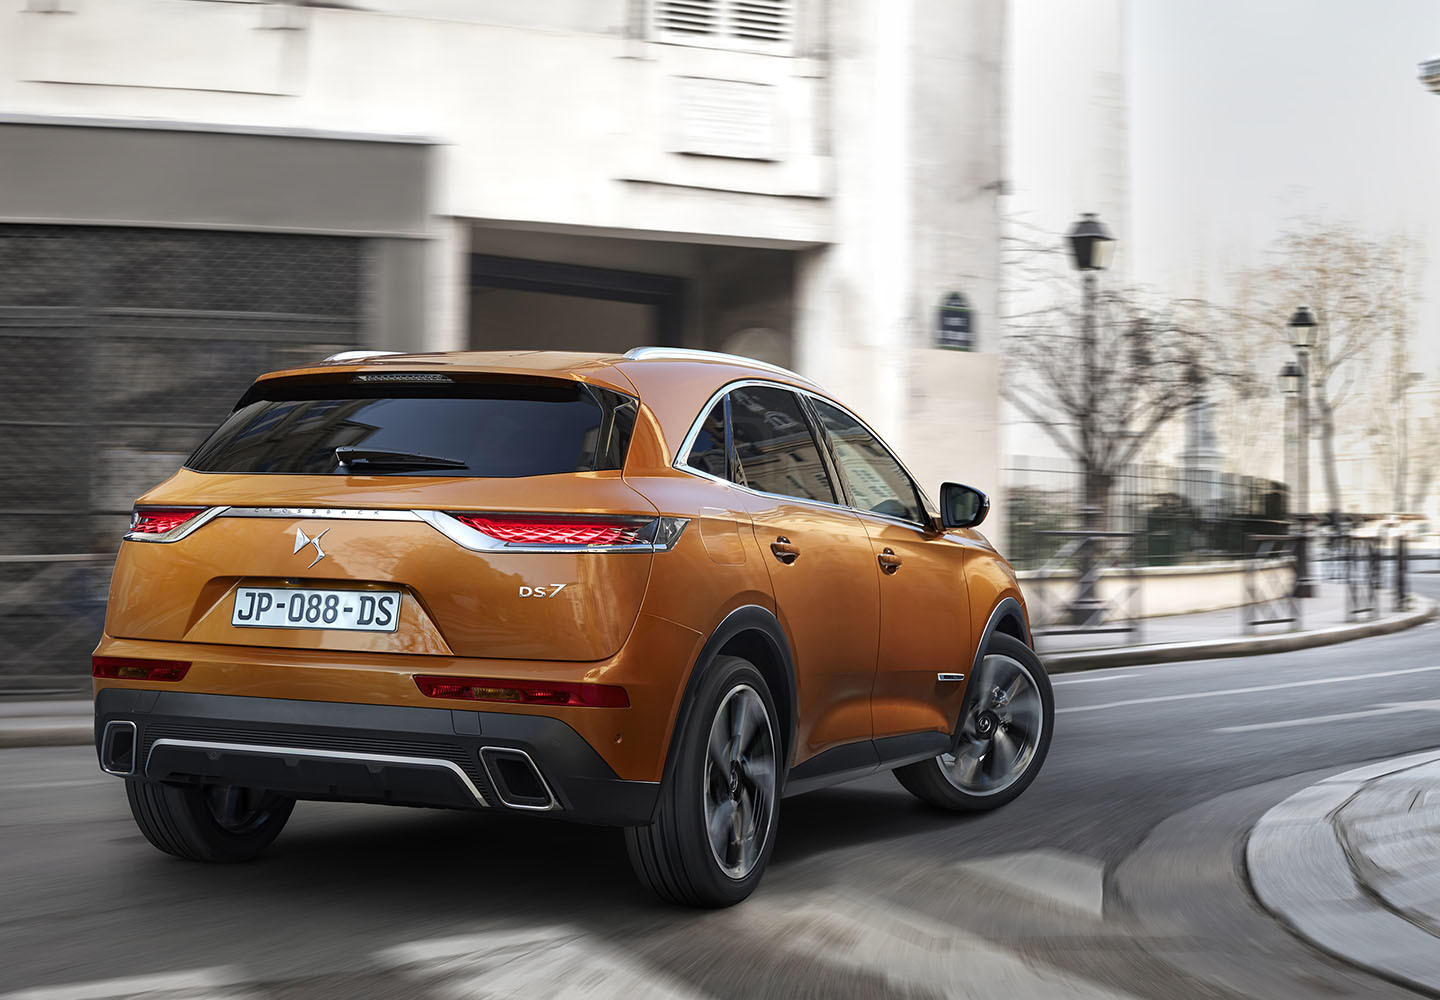 citroen ds 7 crossback-1